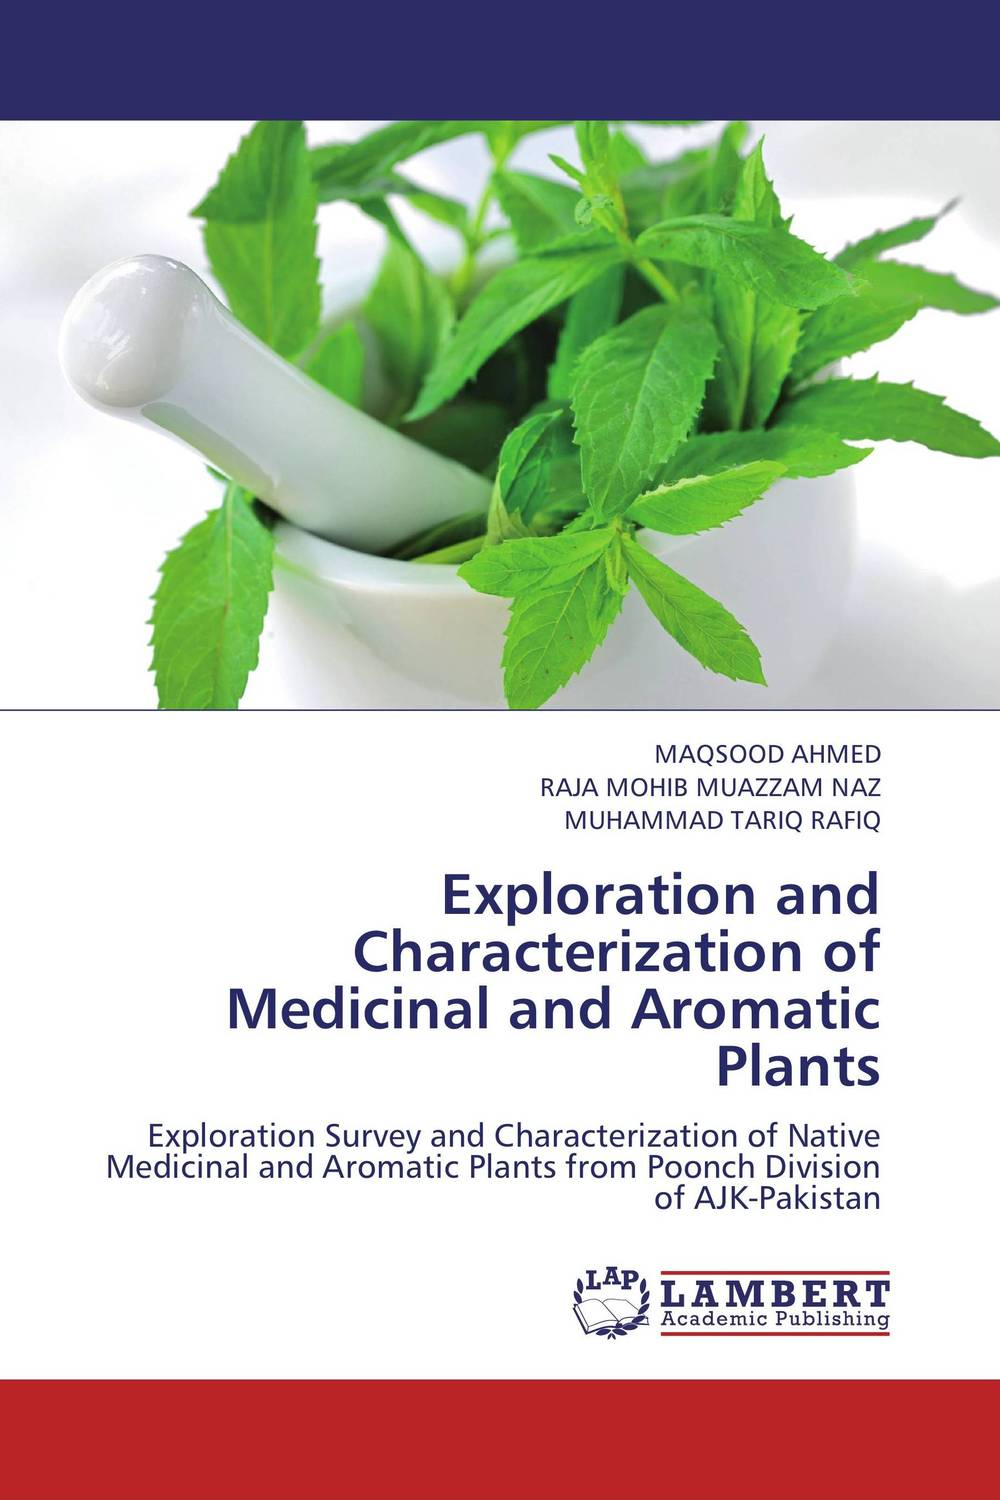 Exploration and Characterization of Medicinal and Aromatic Plants george varghese diana john and solomon habtemariam medicinal plants for kidney stone a monograph